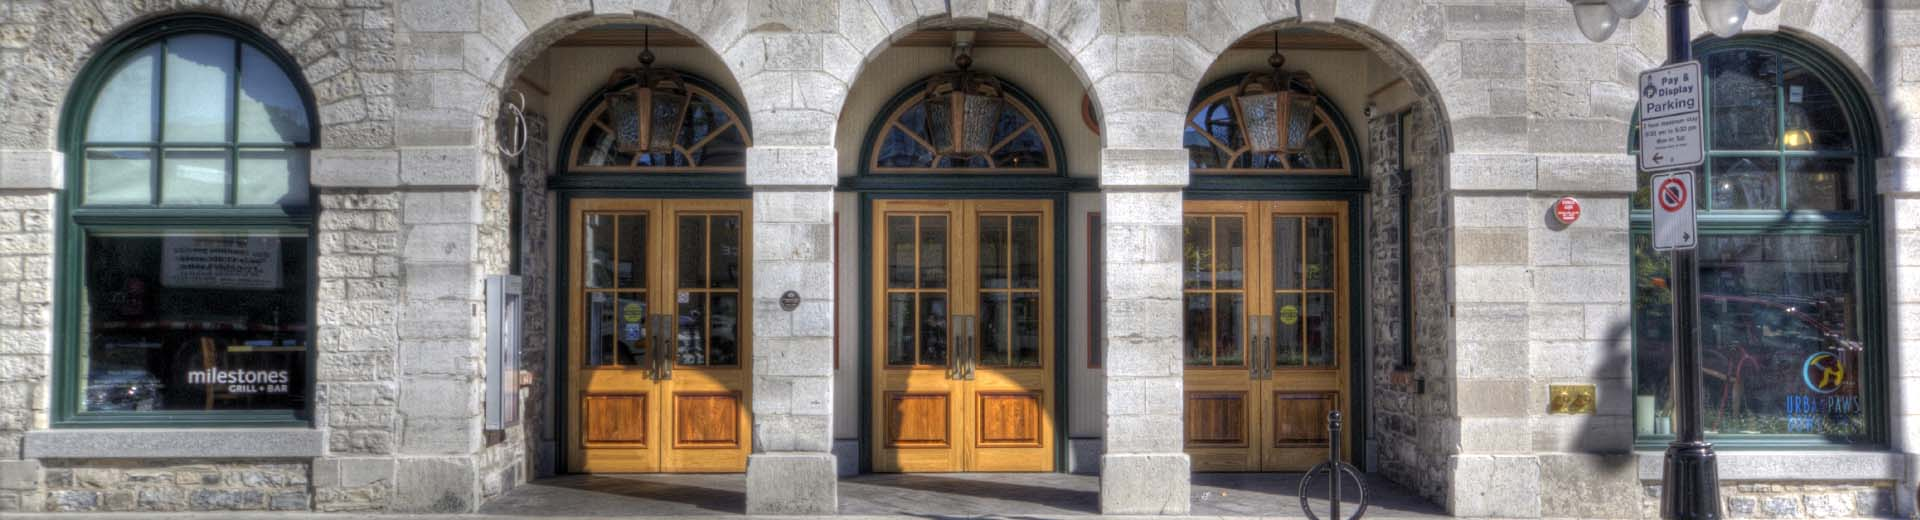 front doors smith robinson building Kingston